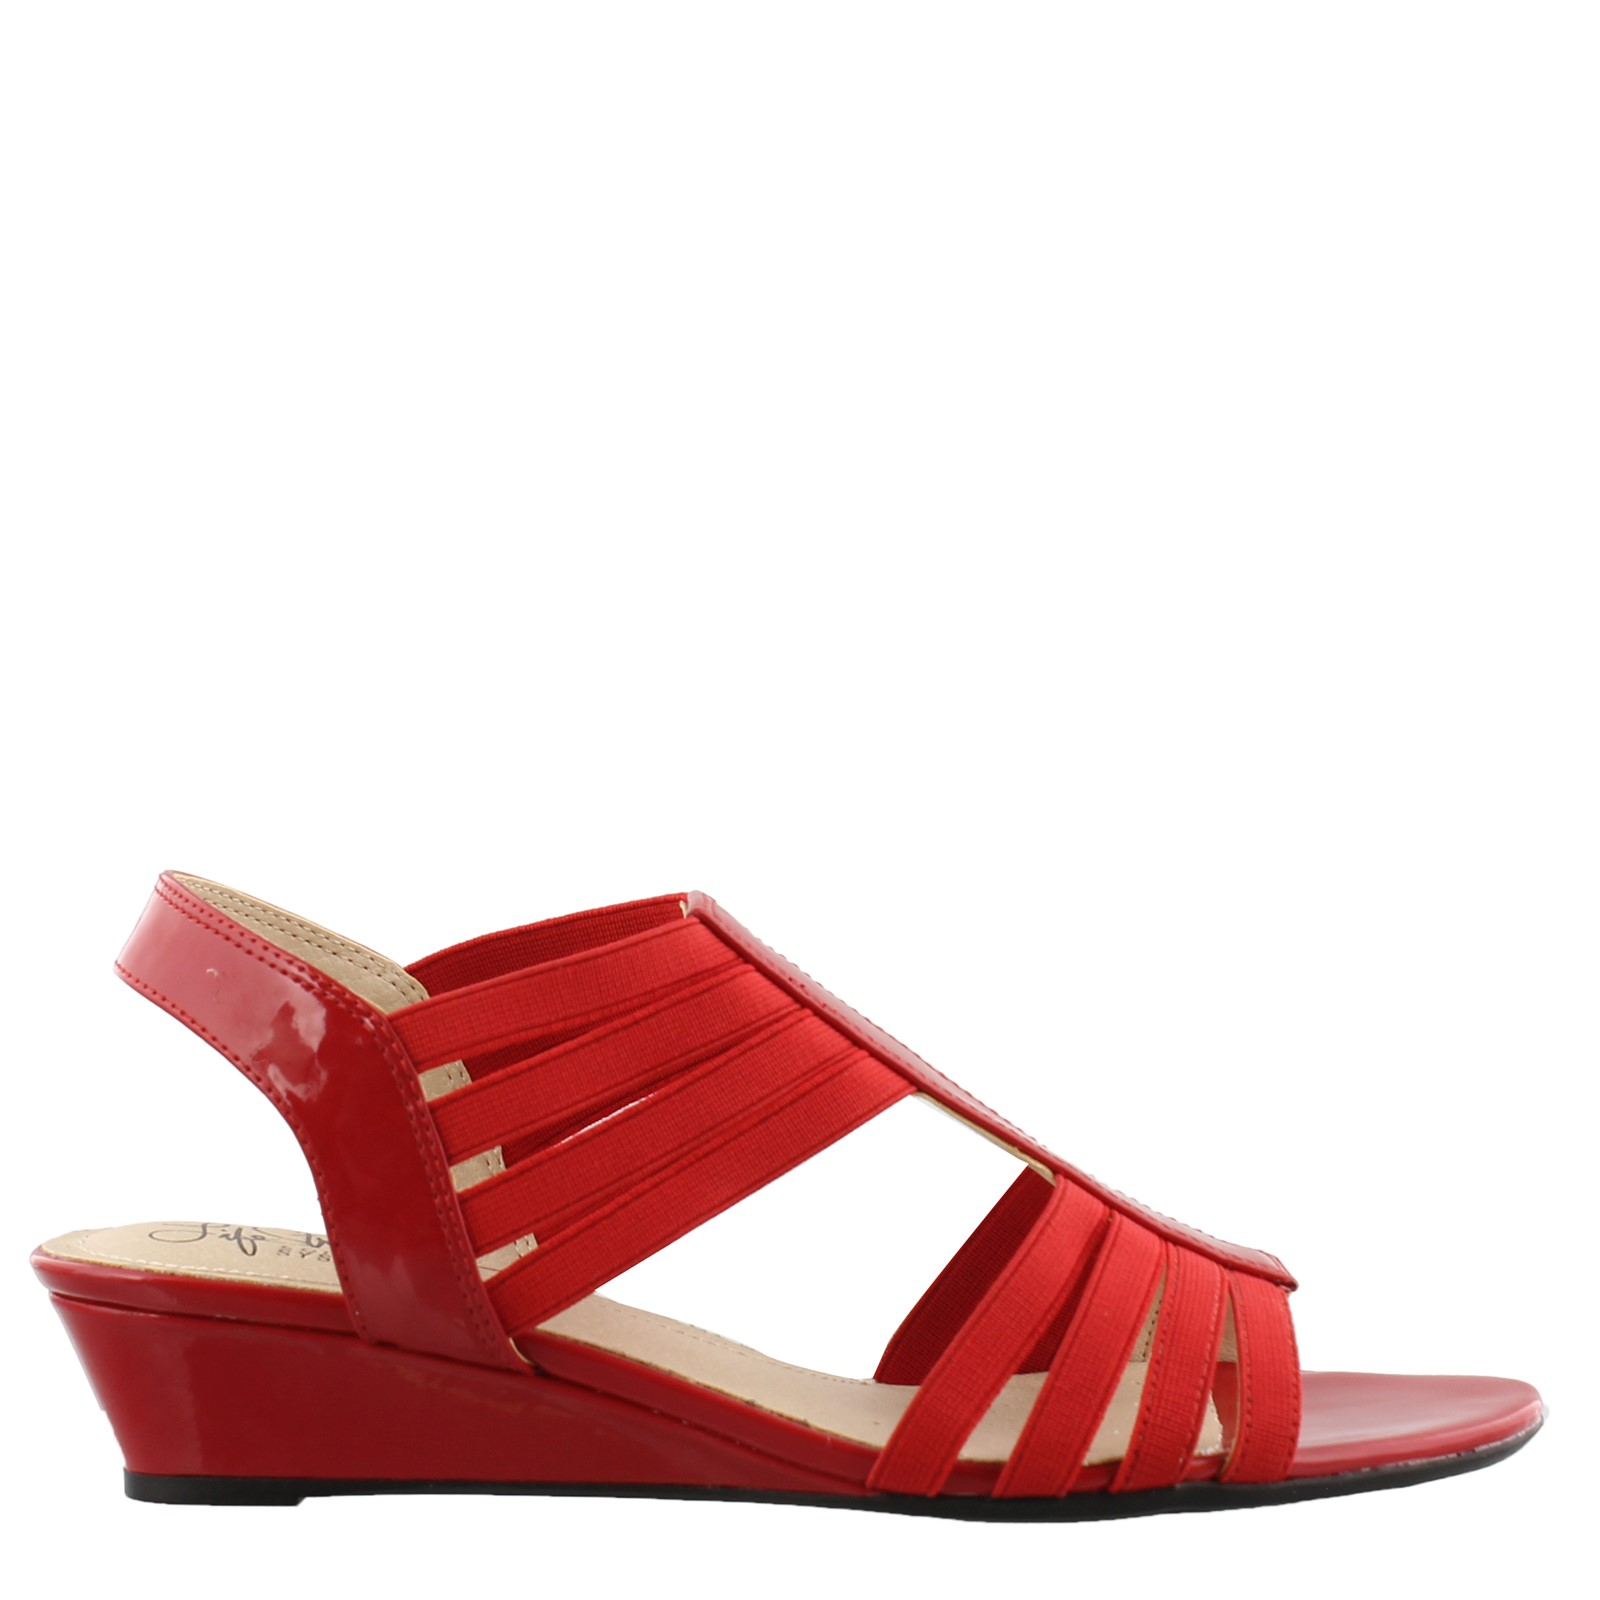 Women's Lifestride, Yours Wedge Sandals